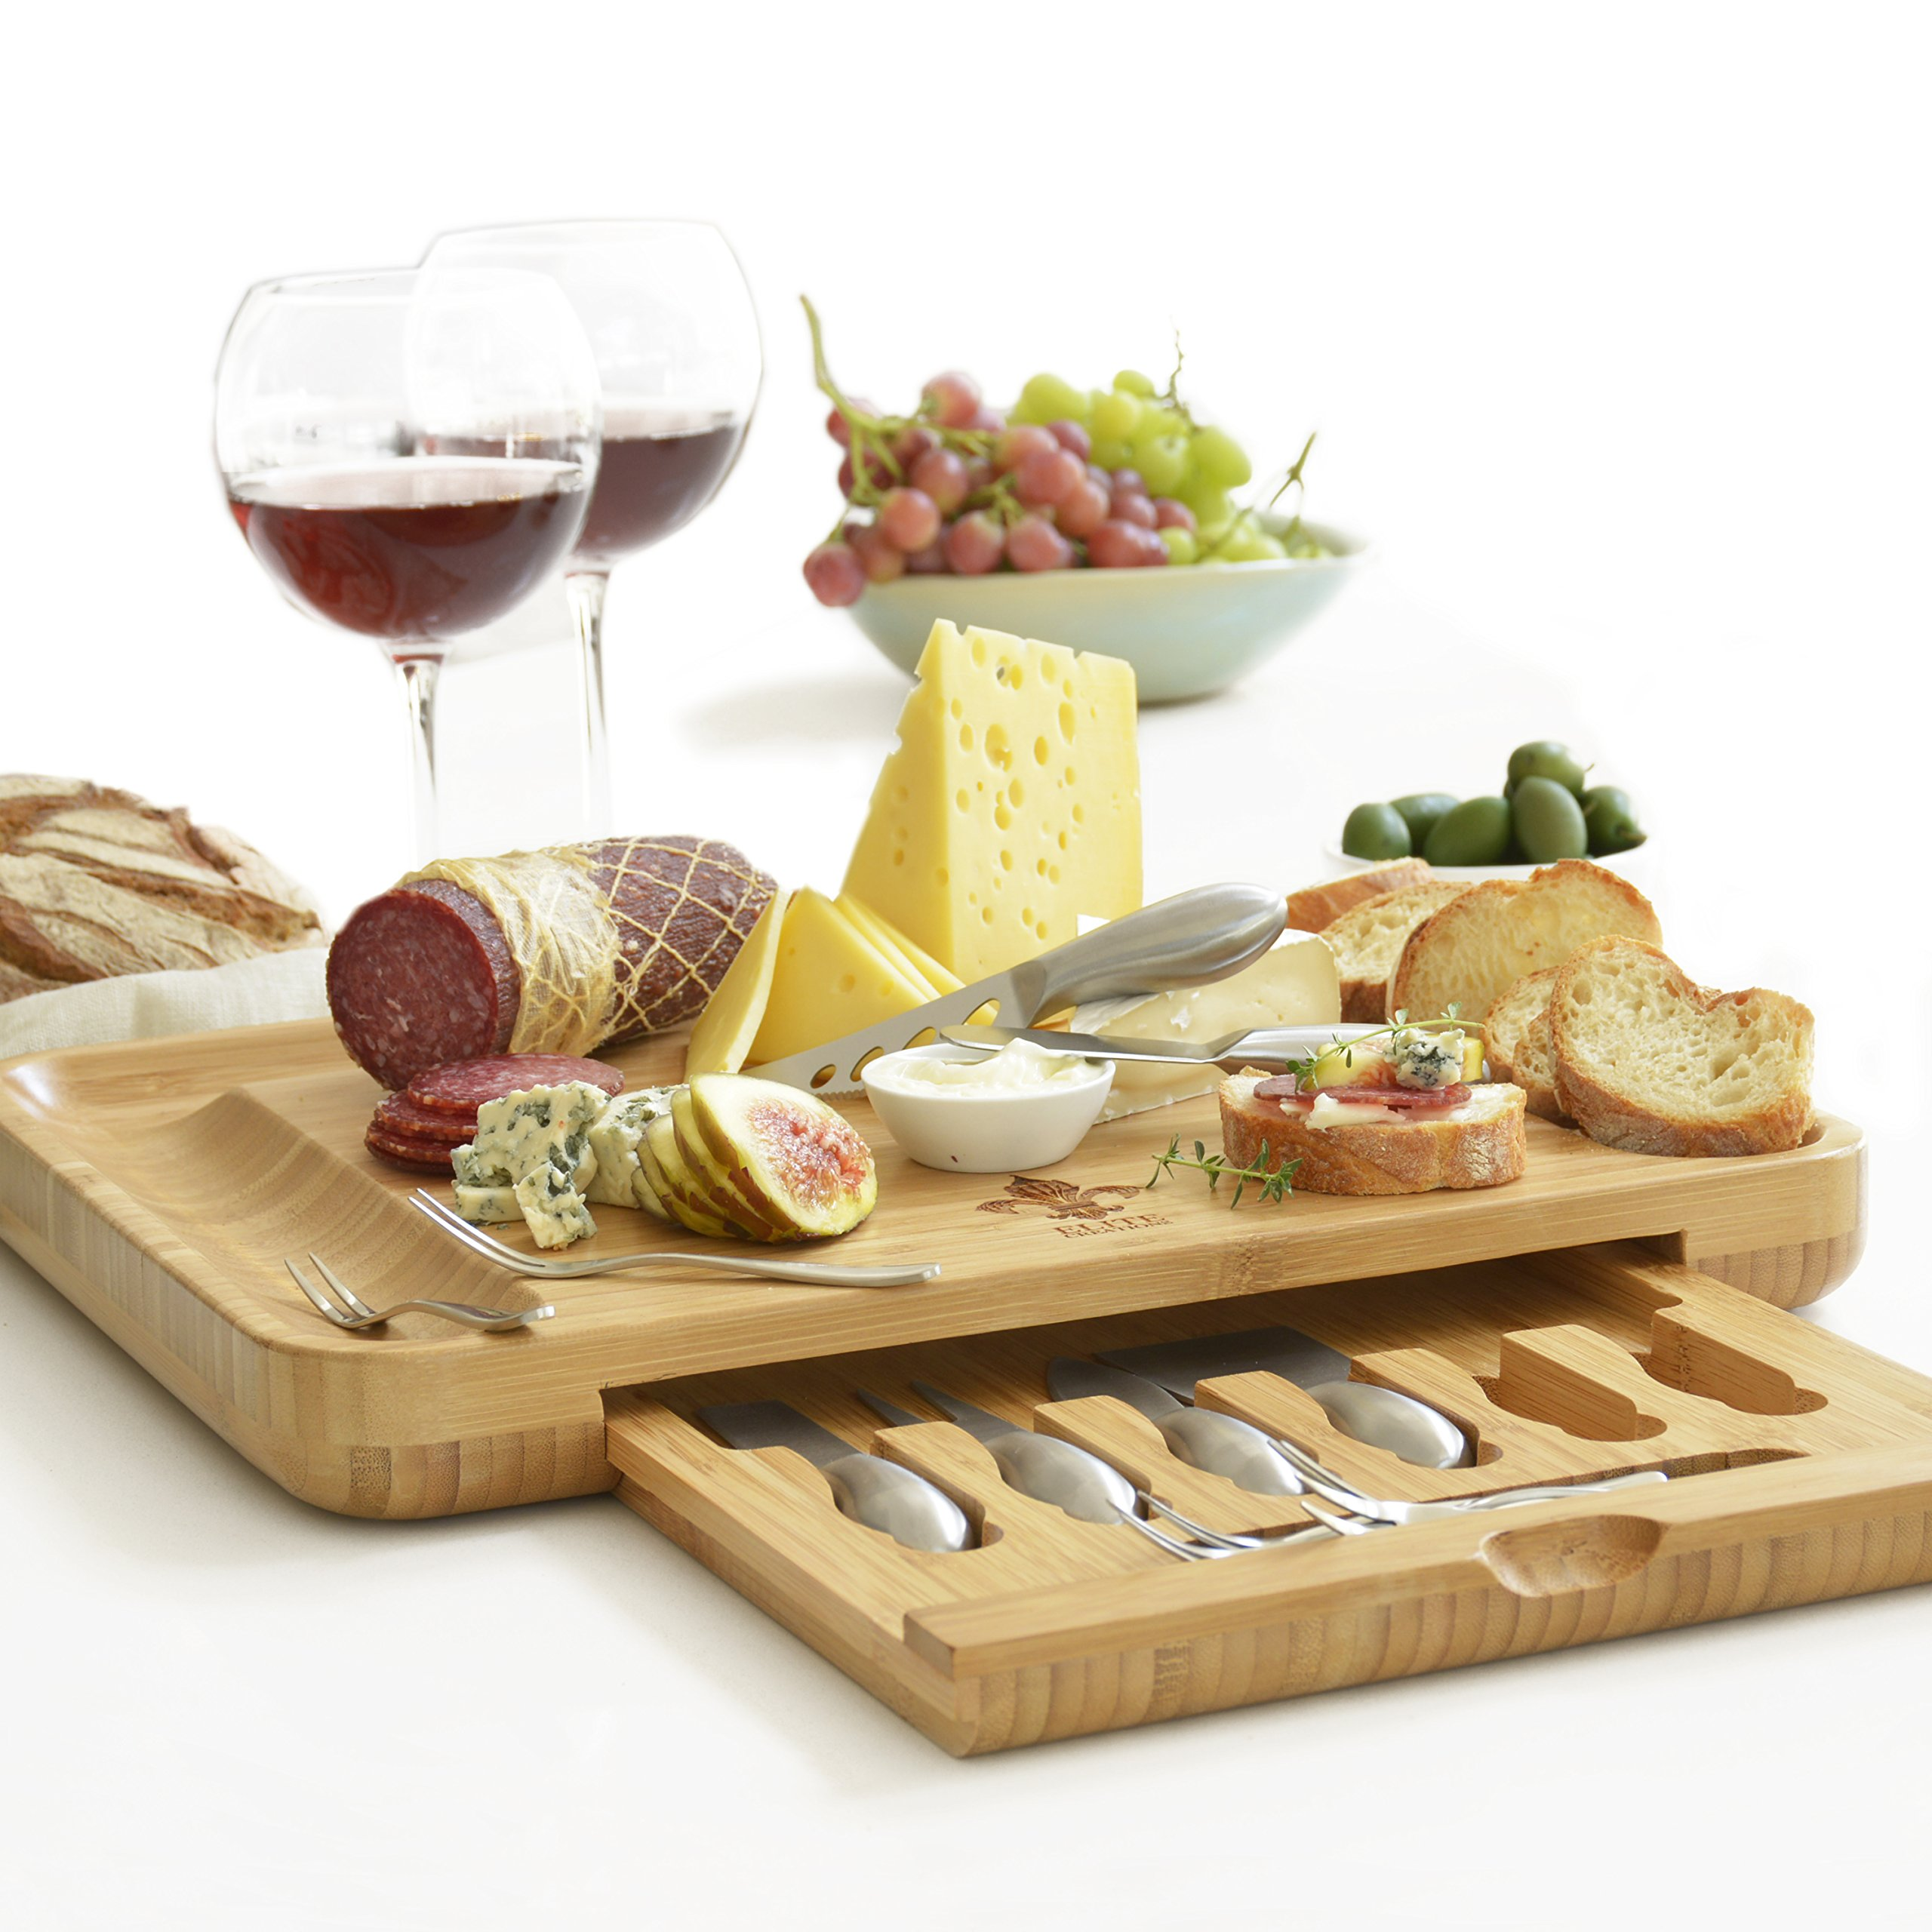 Deluxe cheese board & utensils gift set – extensive serving set - large 100% bamboo board & 6 stainless steel cheese knives & 6 appetizer forks by elite creations (silver)